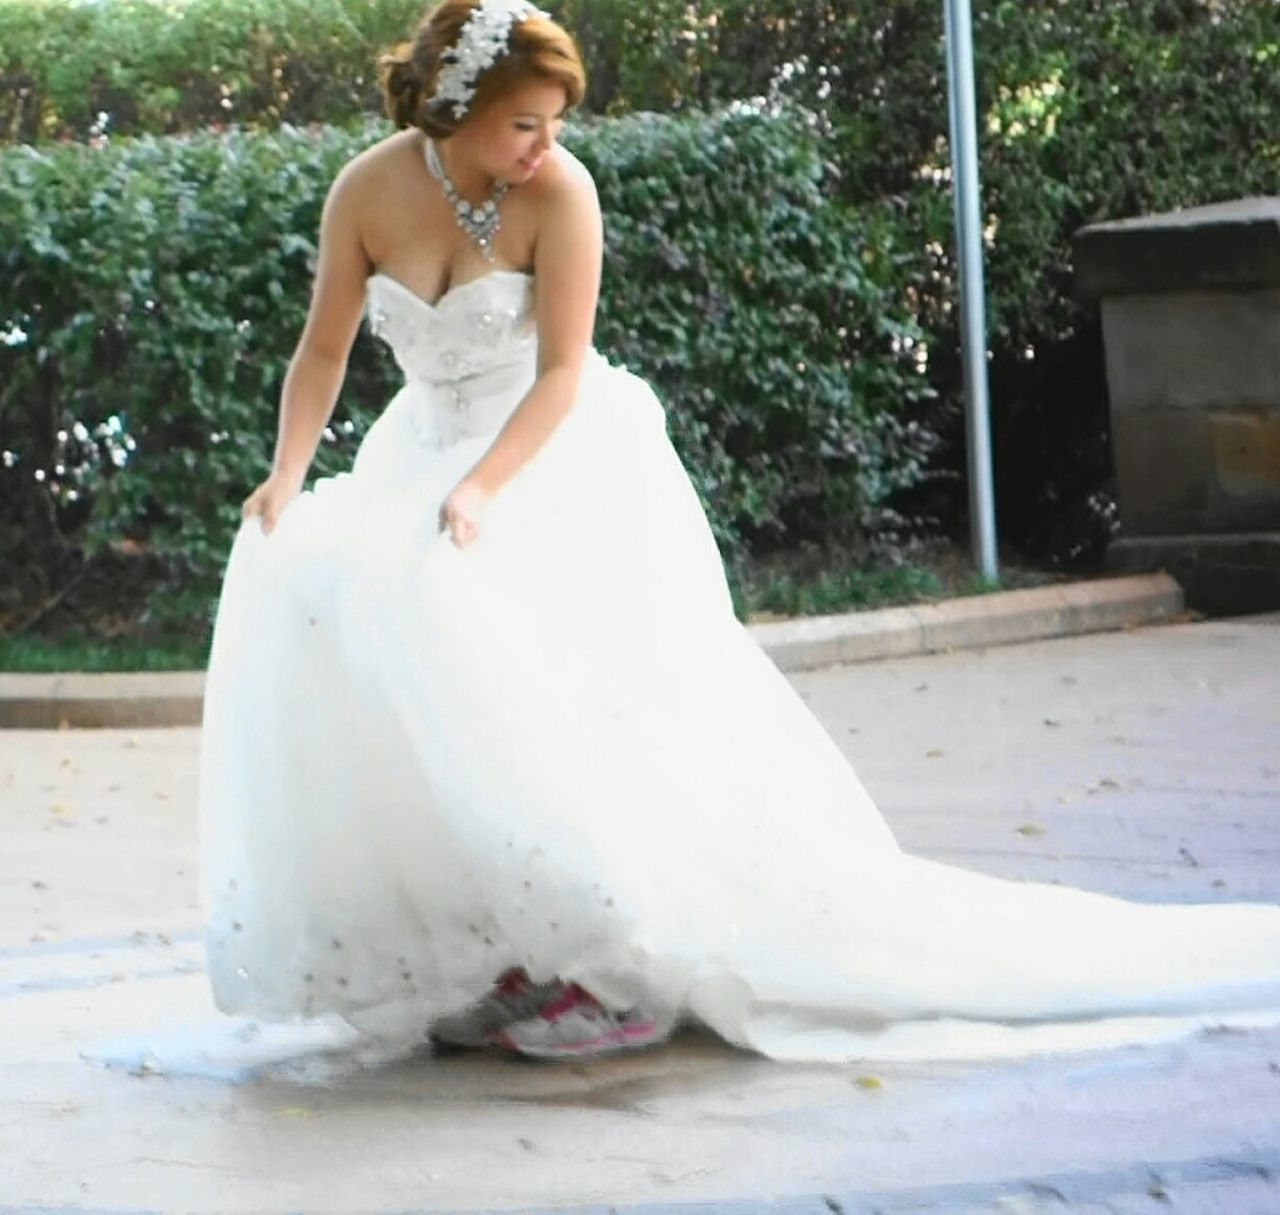 bride, wedding, wedding dress, full length, real people, life events, outdoors, day, one person, women, standing, young adult, young women, well-dressed, groom, bridegroom, adult, people